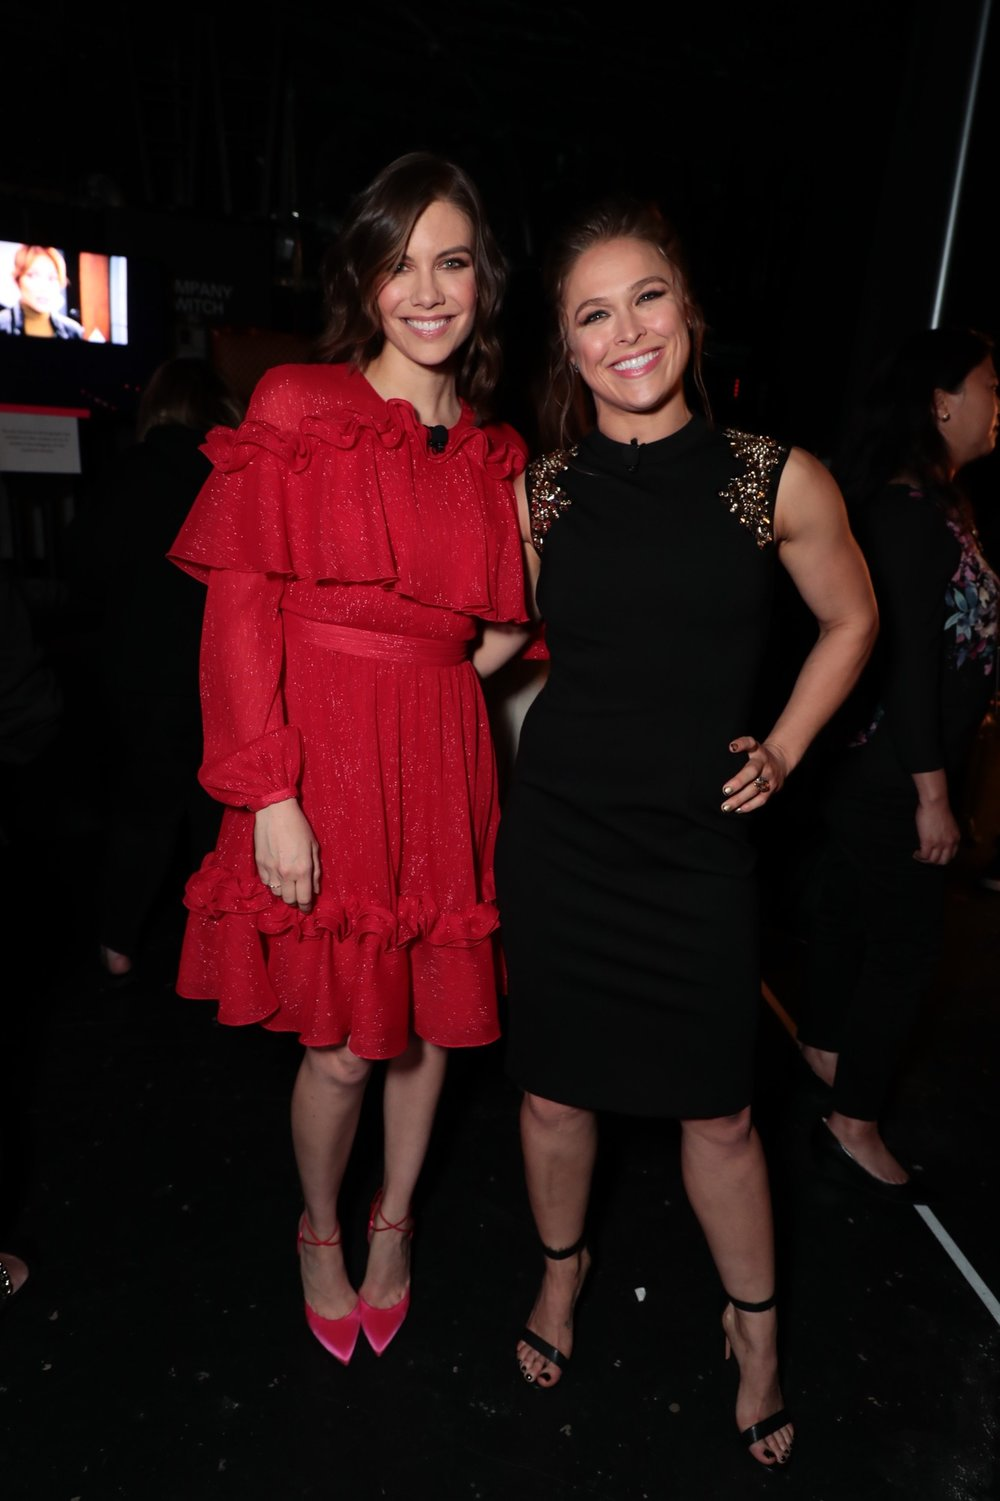 Lauren Cohan and Ronda Rousey attend STXfilms' 2018 CinemaCon Presentation at The Colosseum of Caesars Palace, Las Vegas, NV Tuesday, April 24, 2018.